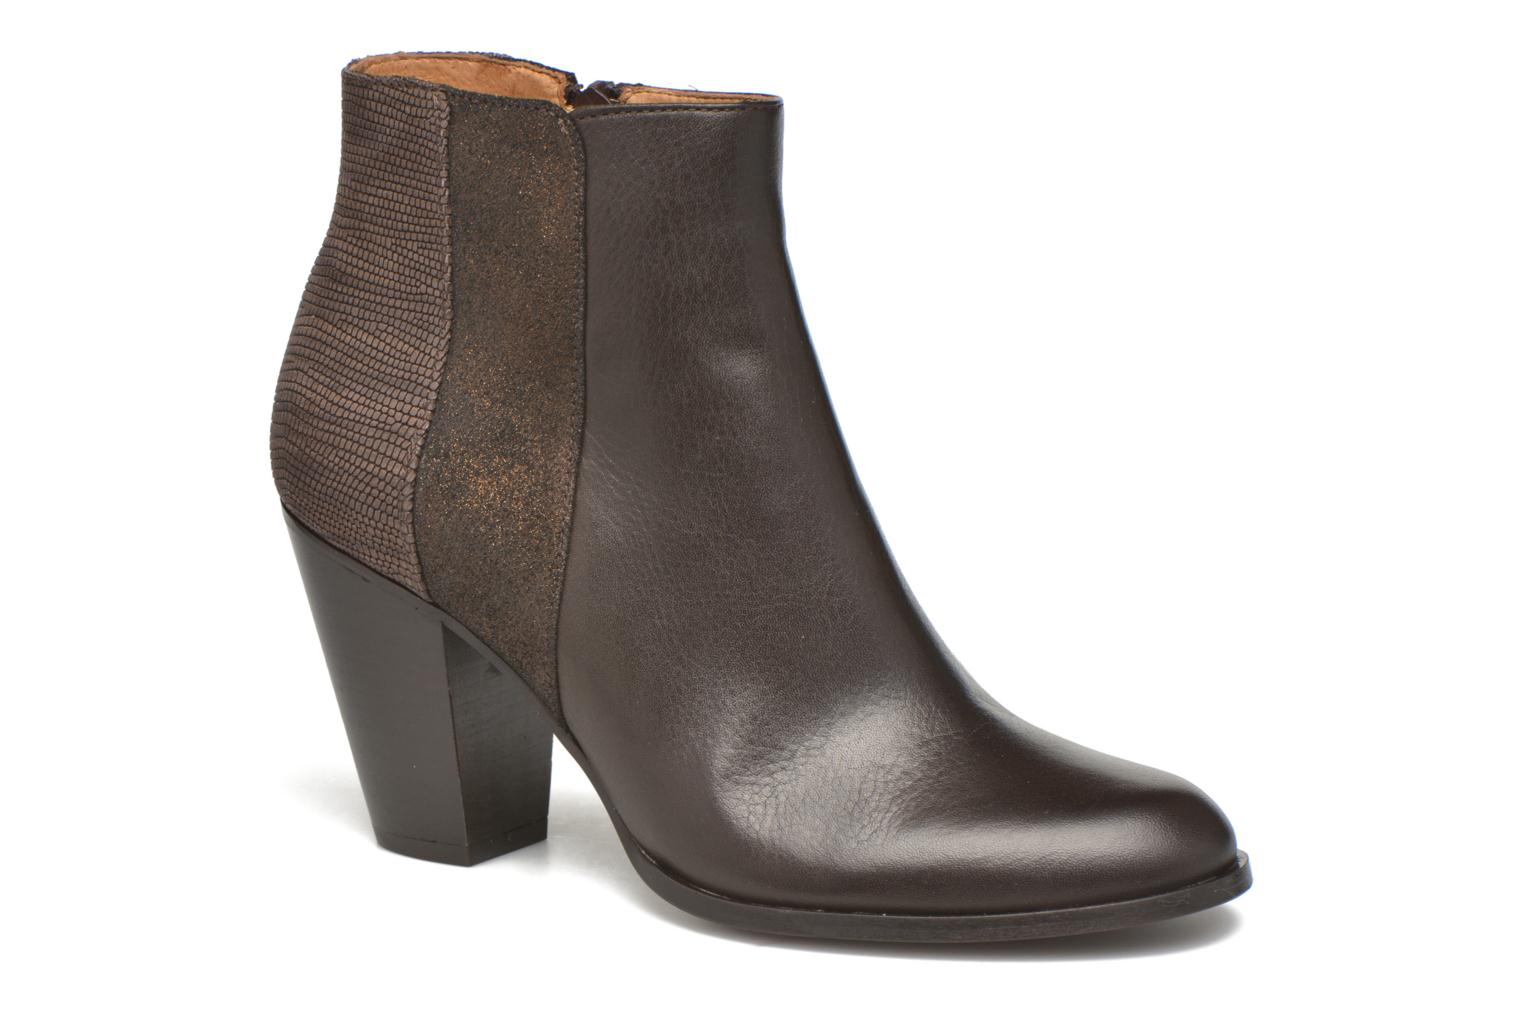 Bottines et boots Schmoove Woman Gravity delta Marron vue détail/paire